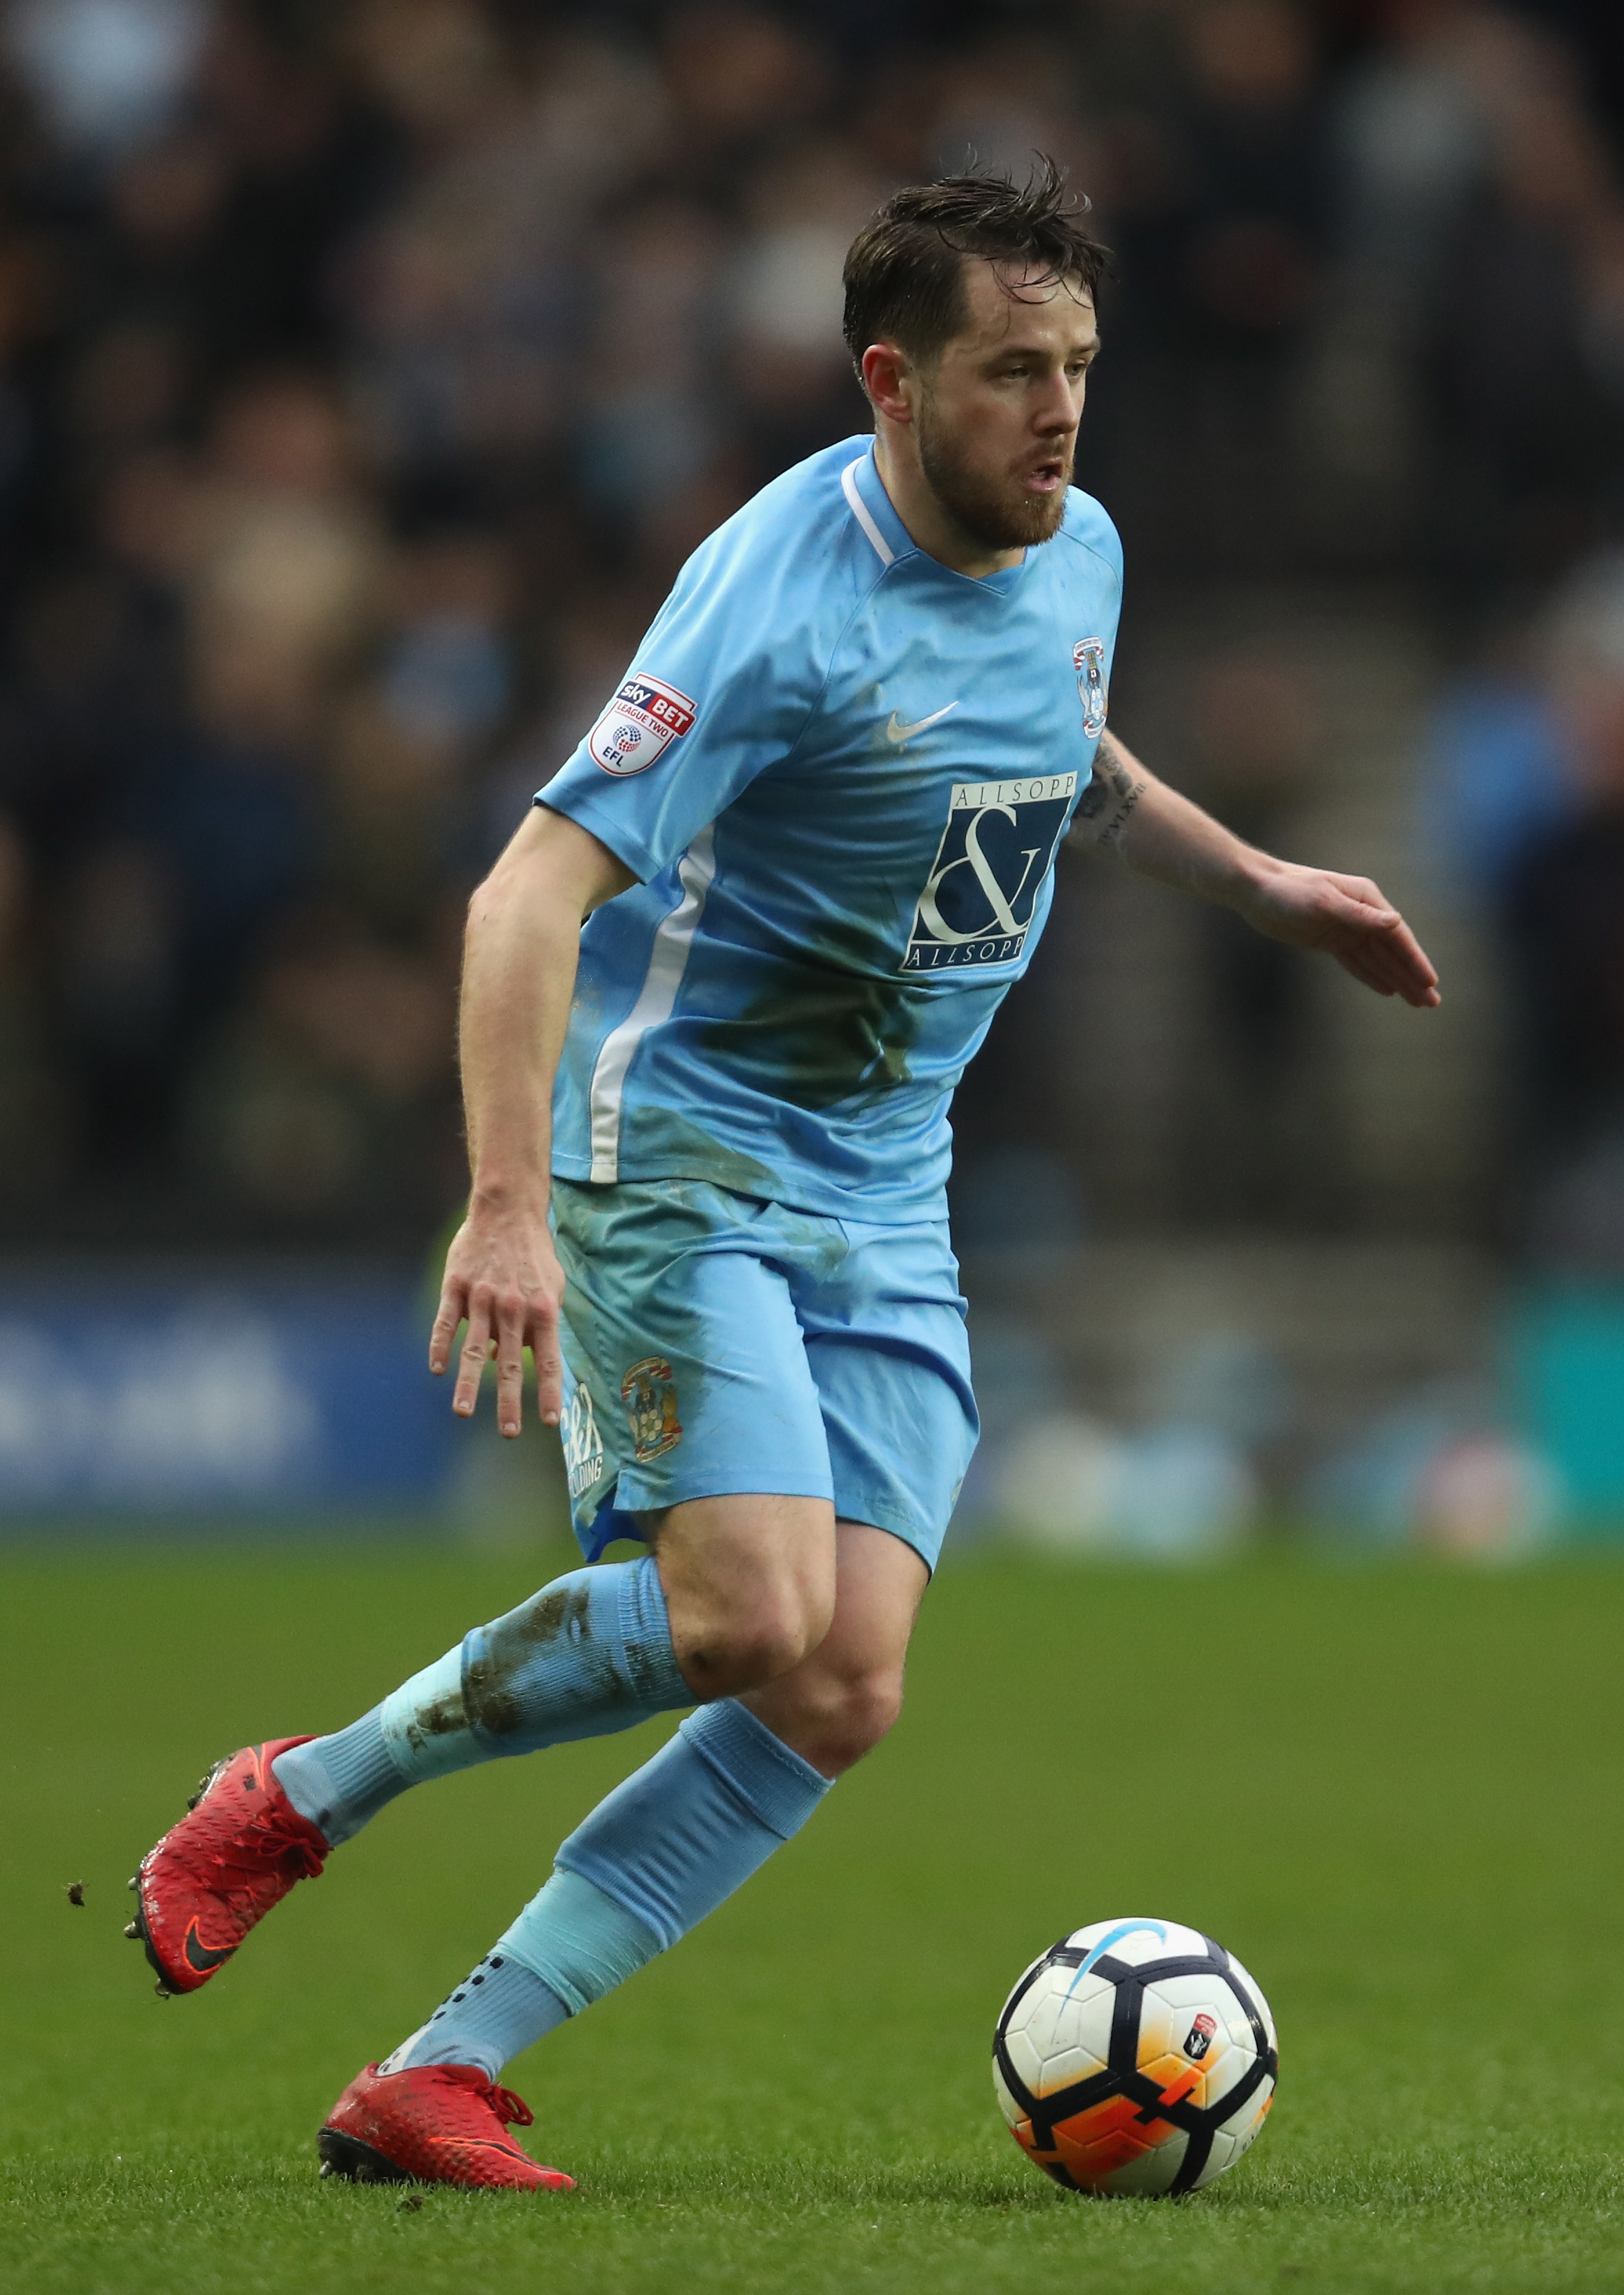 Milton Keynes Dons v Coventry City - The Emirates FA Cup Fourth Round